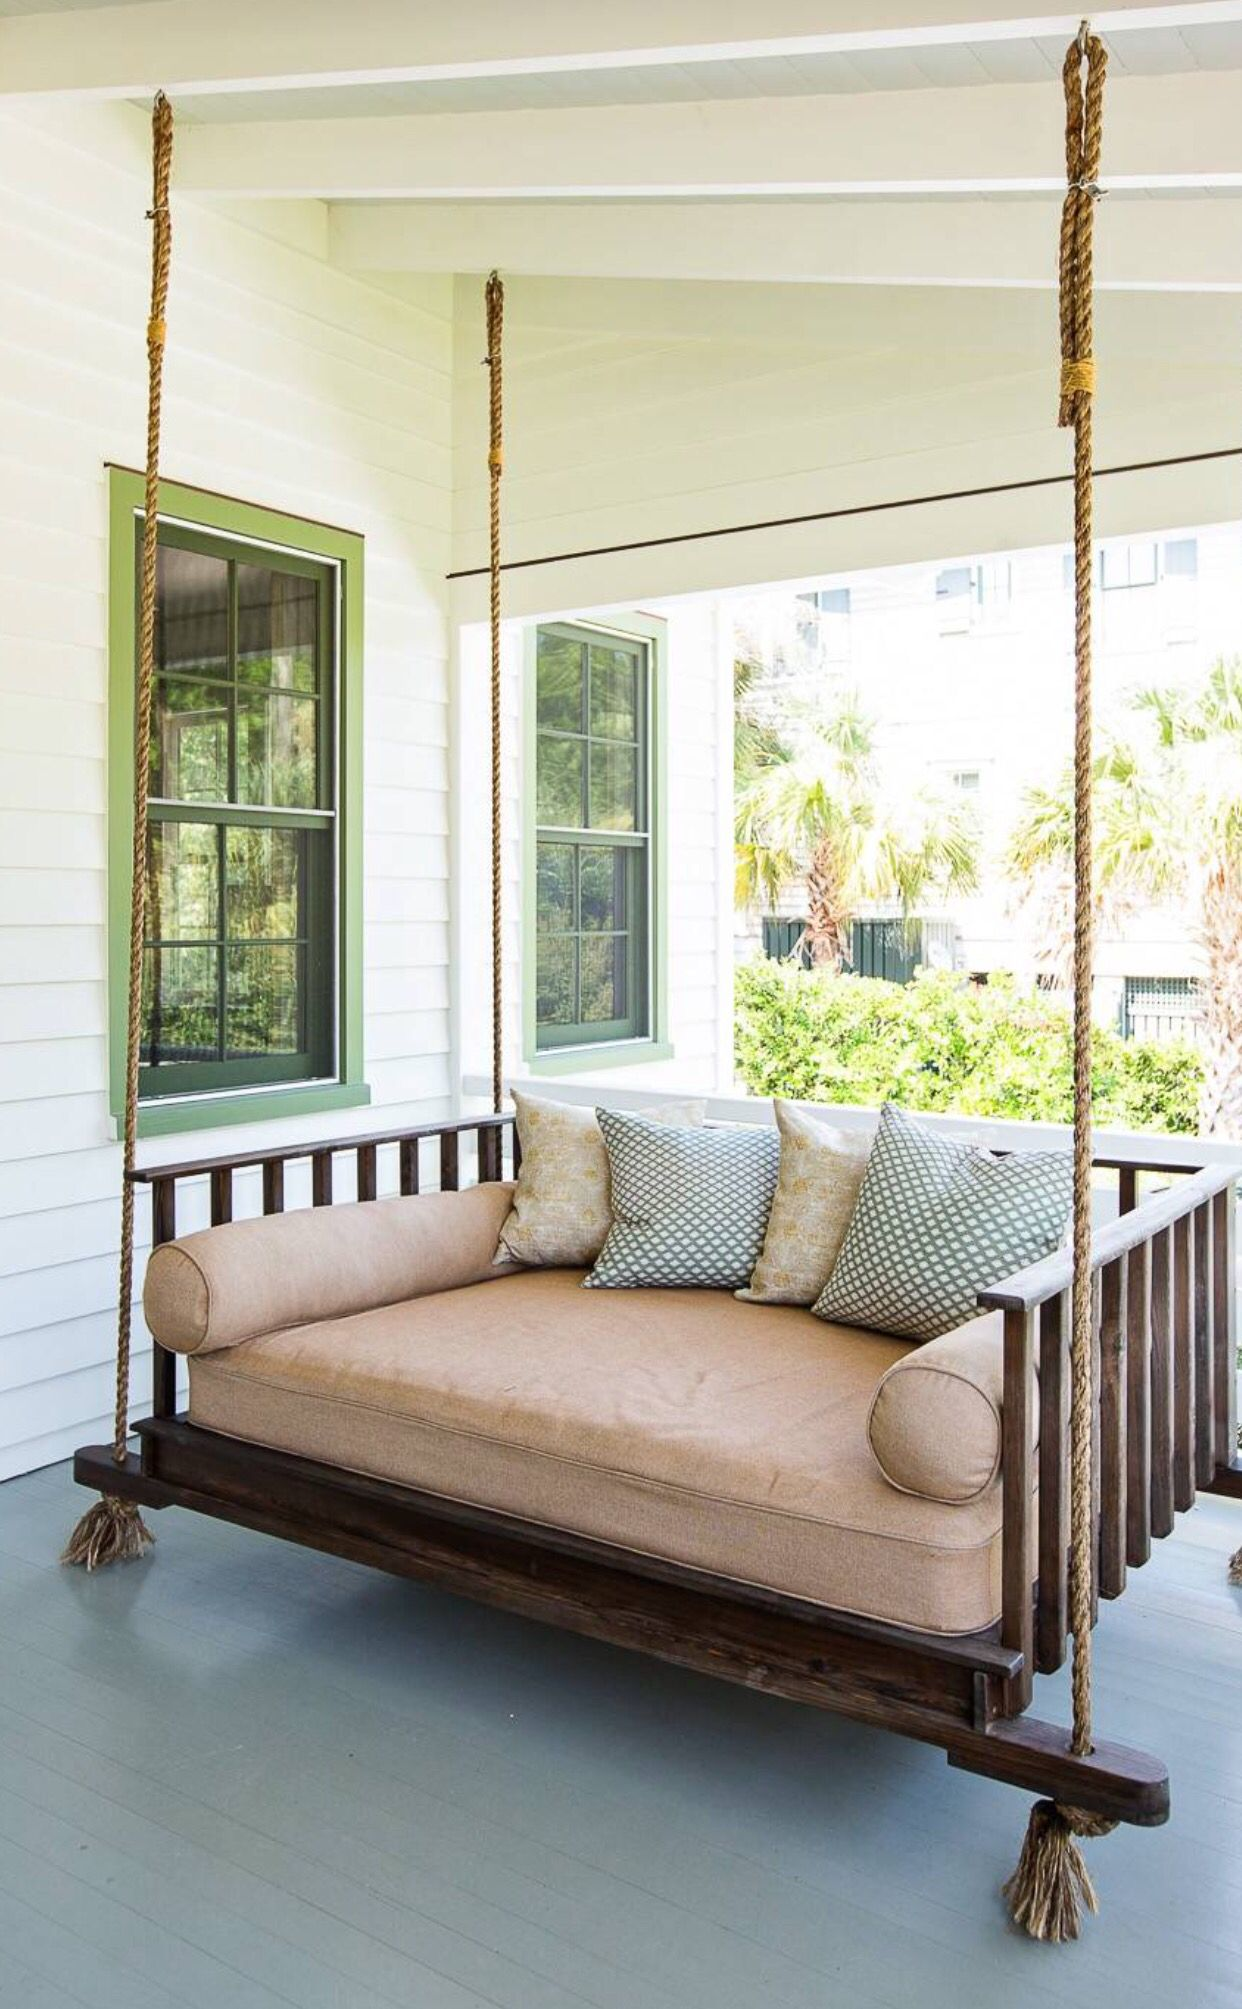 Classy Swing Southern Style Home Country House Decor Home